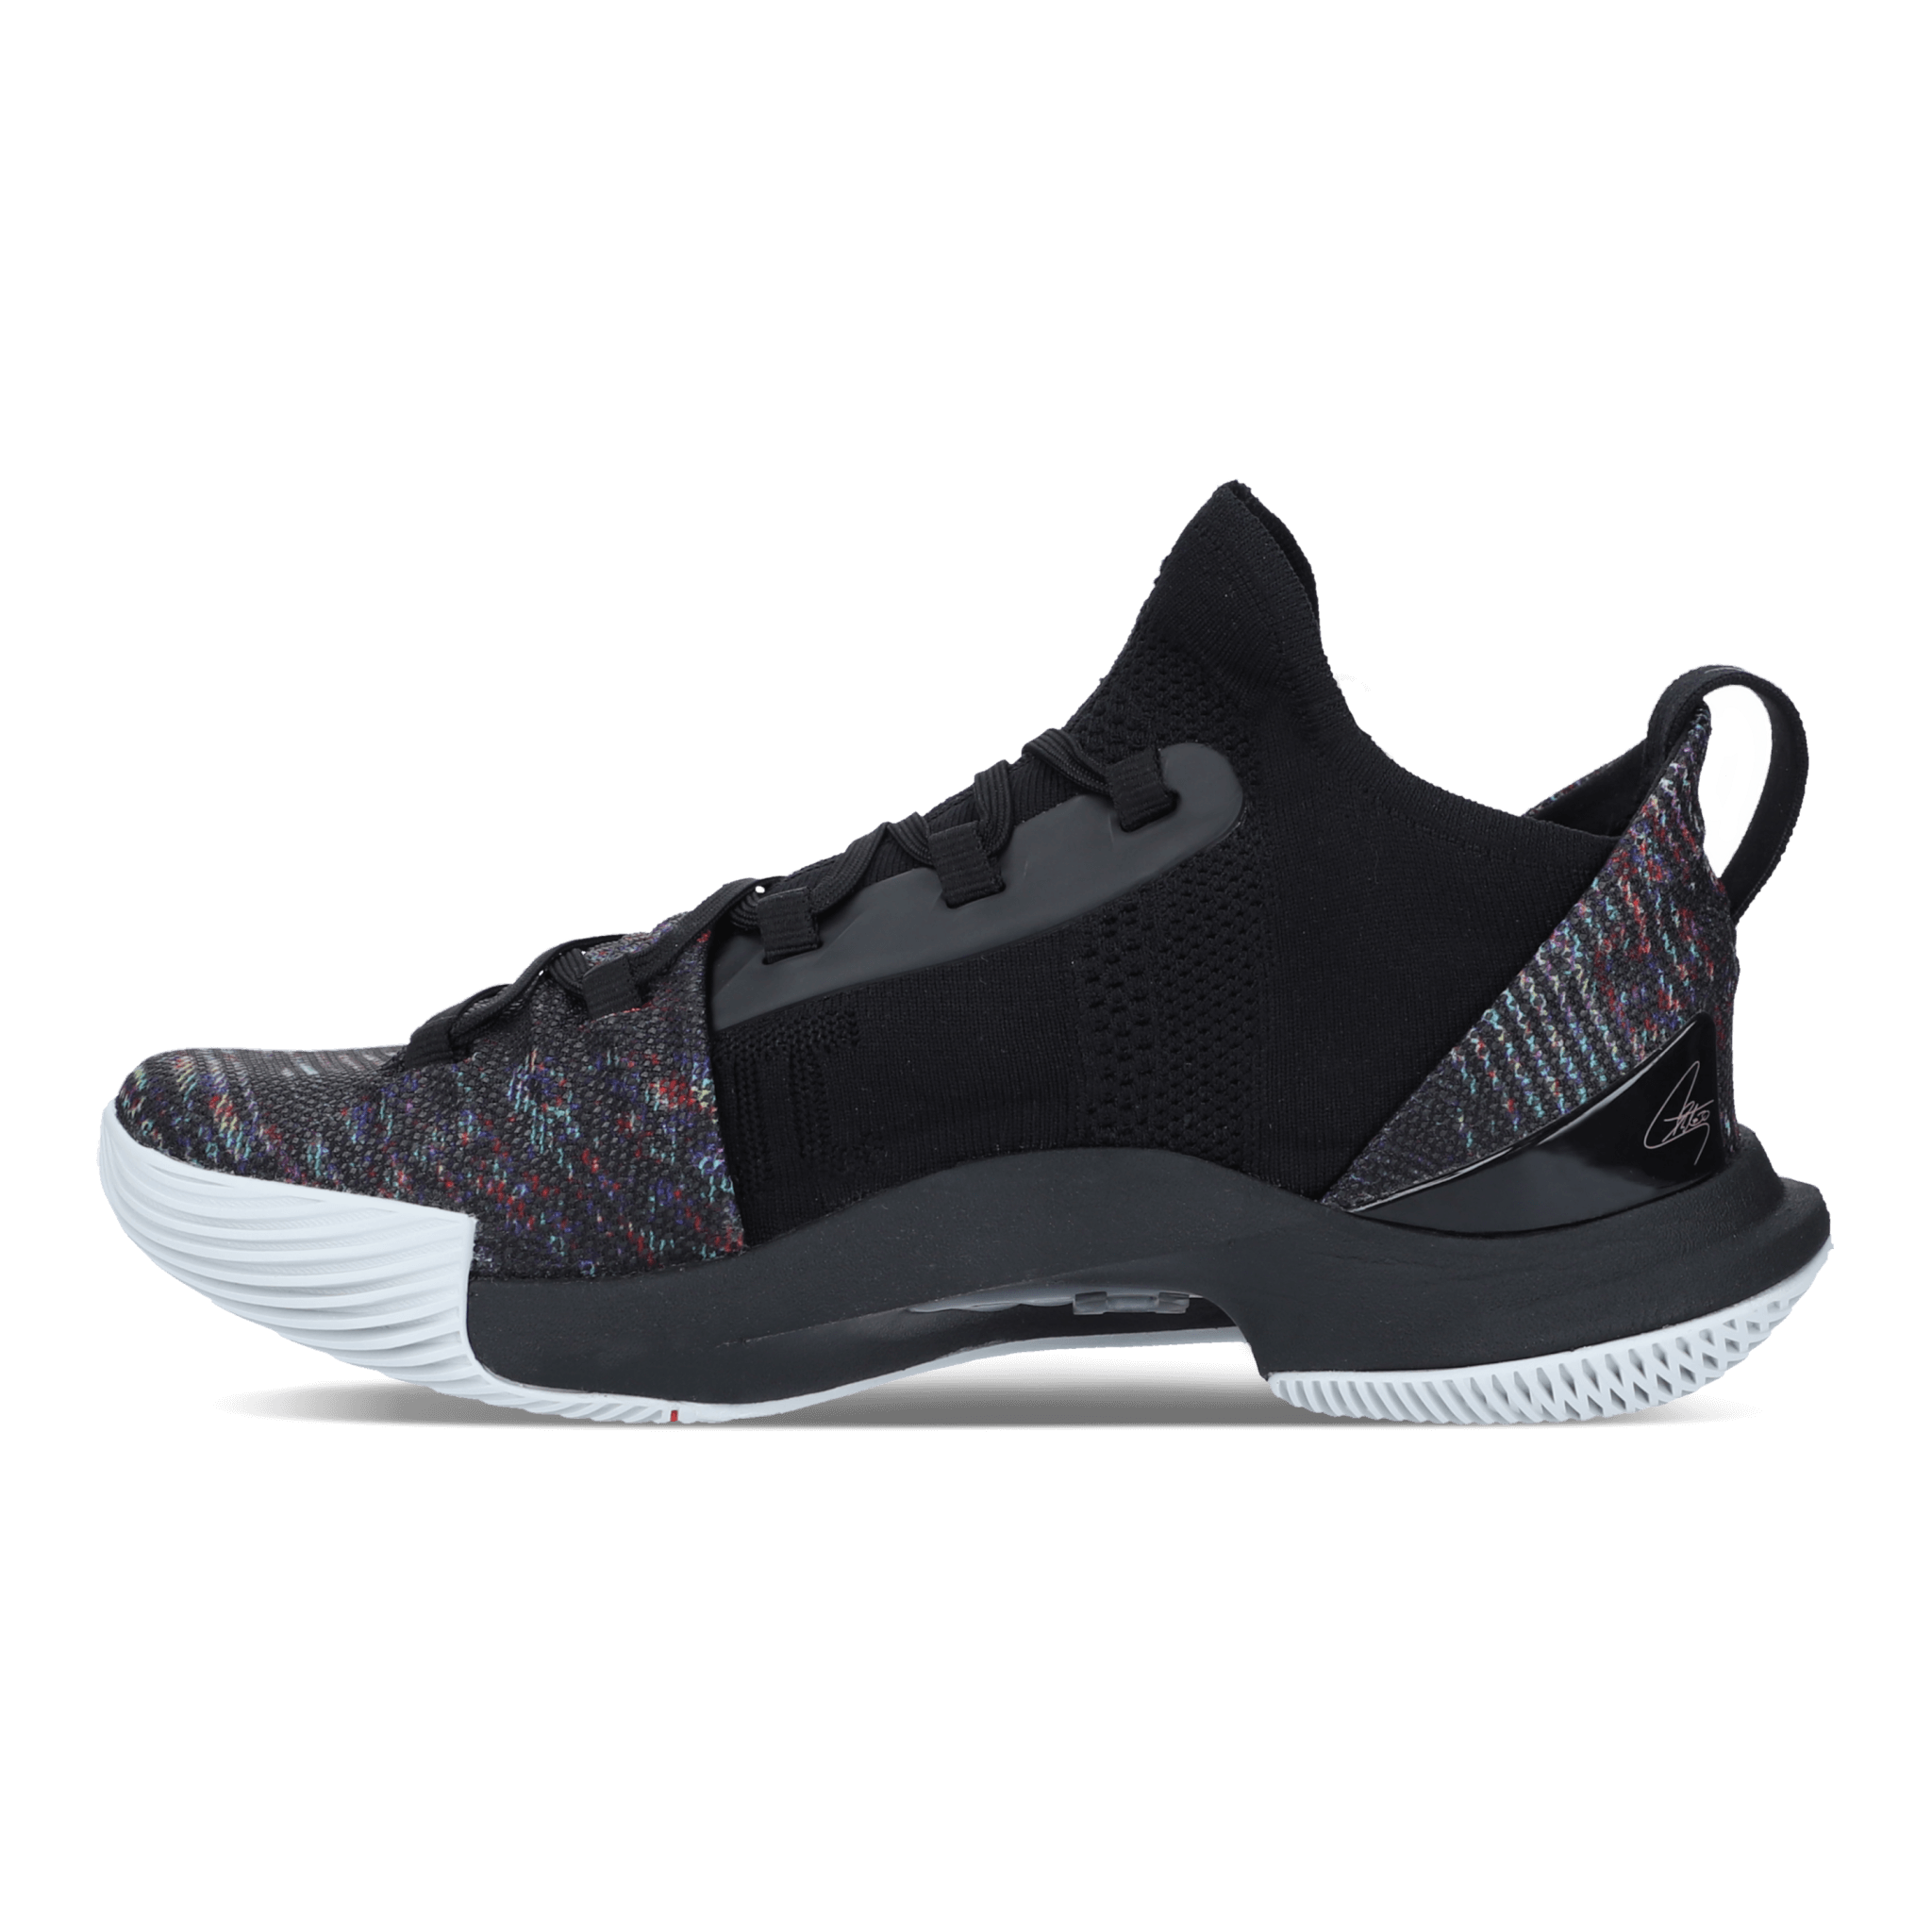 83a0ccc20b5e Under Armour Curry 5 Performance Review